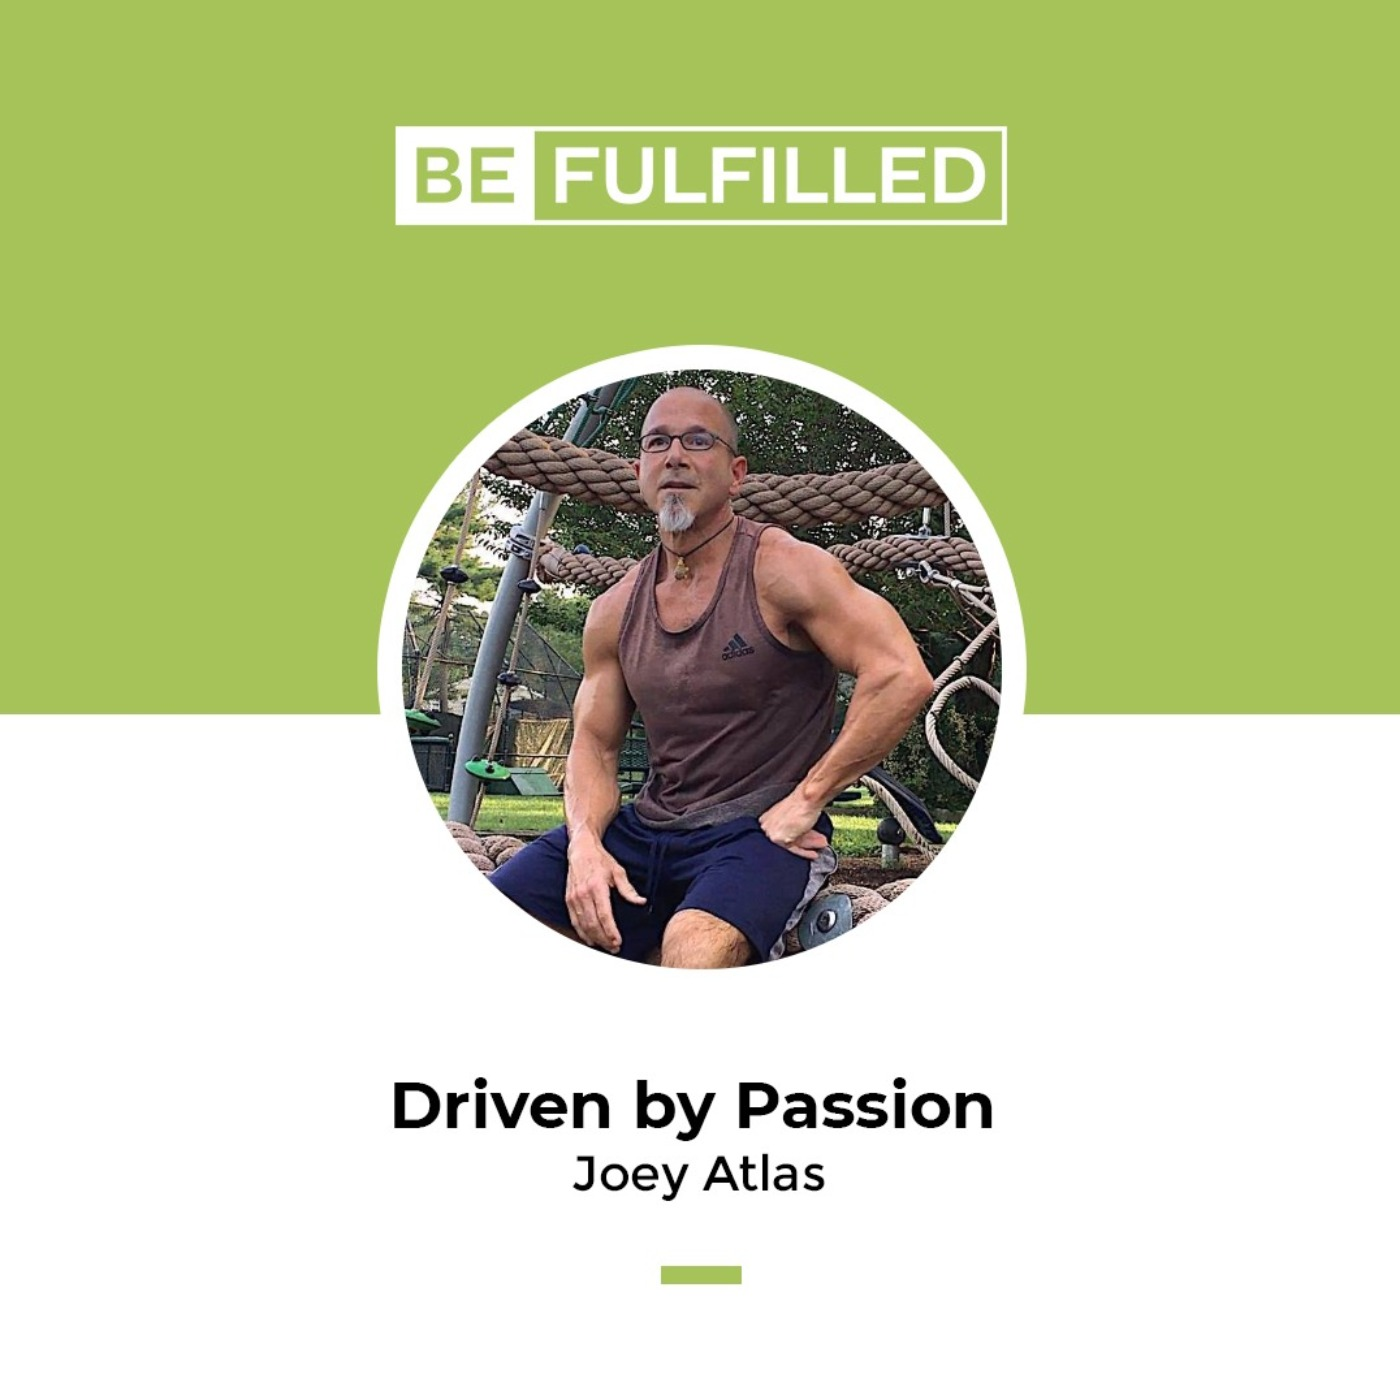 Driven by Passion - Joey Atlas